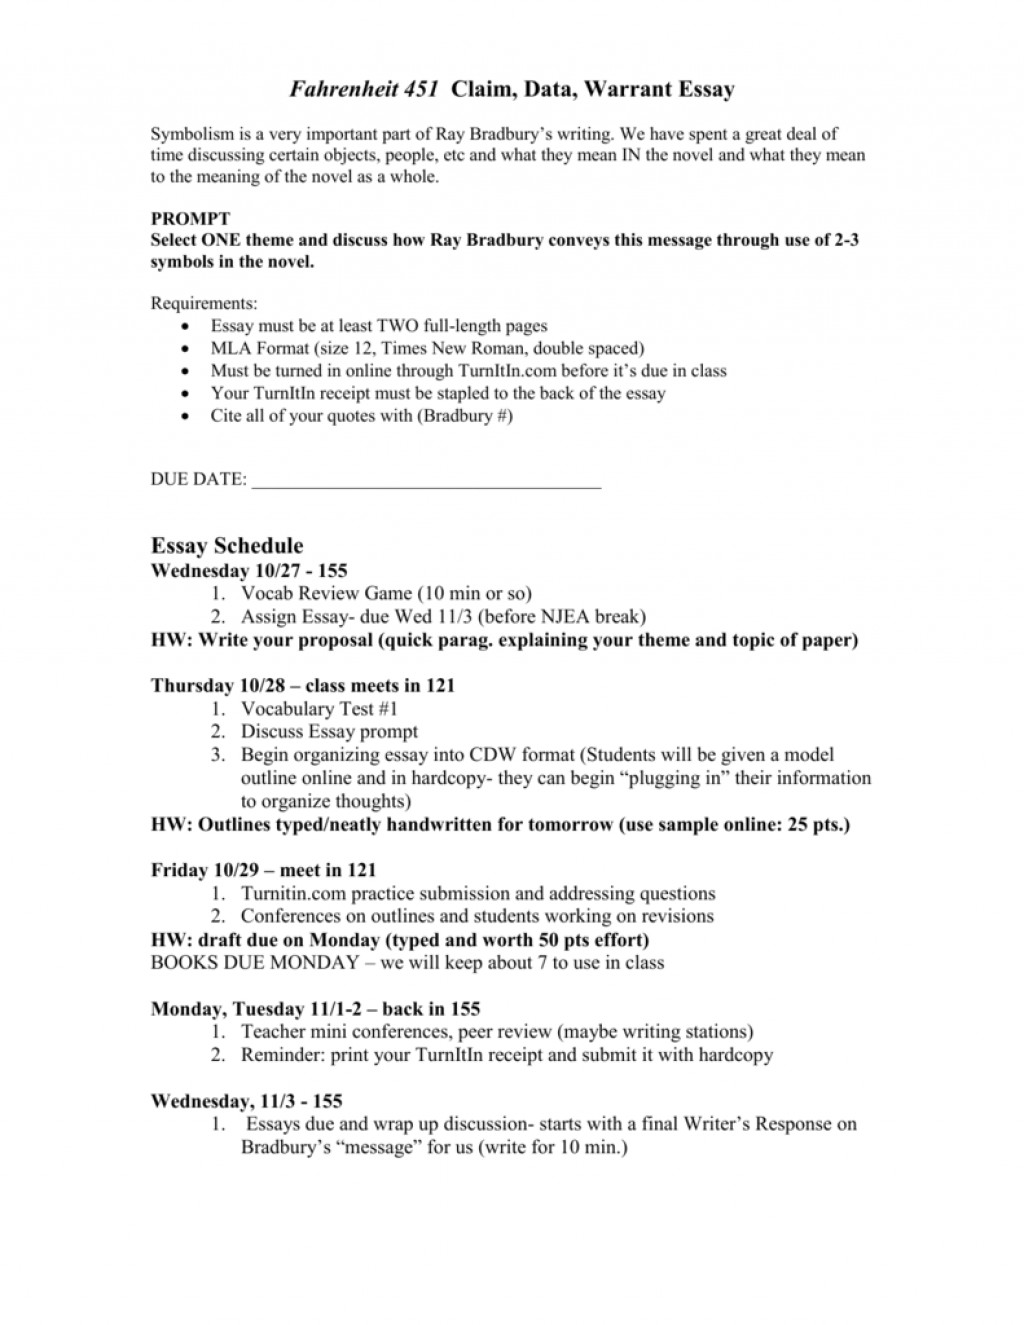 005 Essay Example Warrant 009035614 1 Singular Claim Evidence Glen Search Large